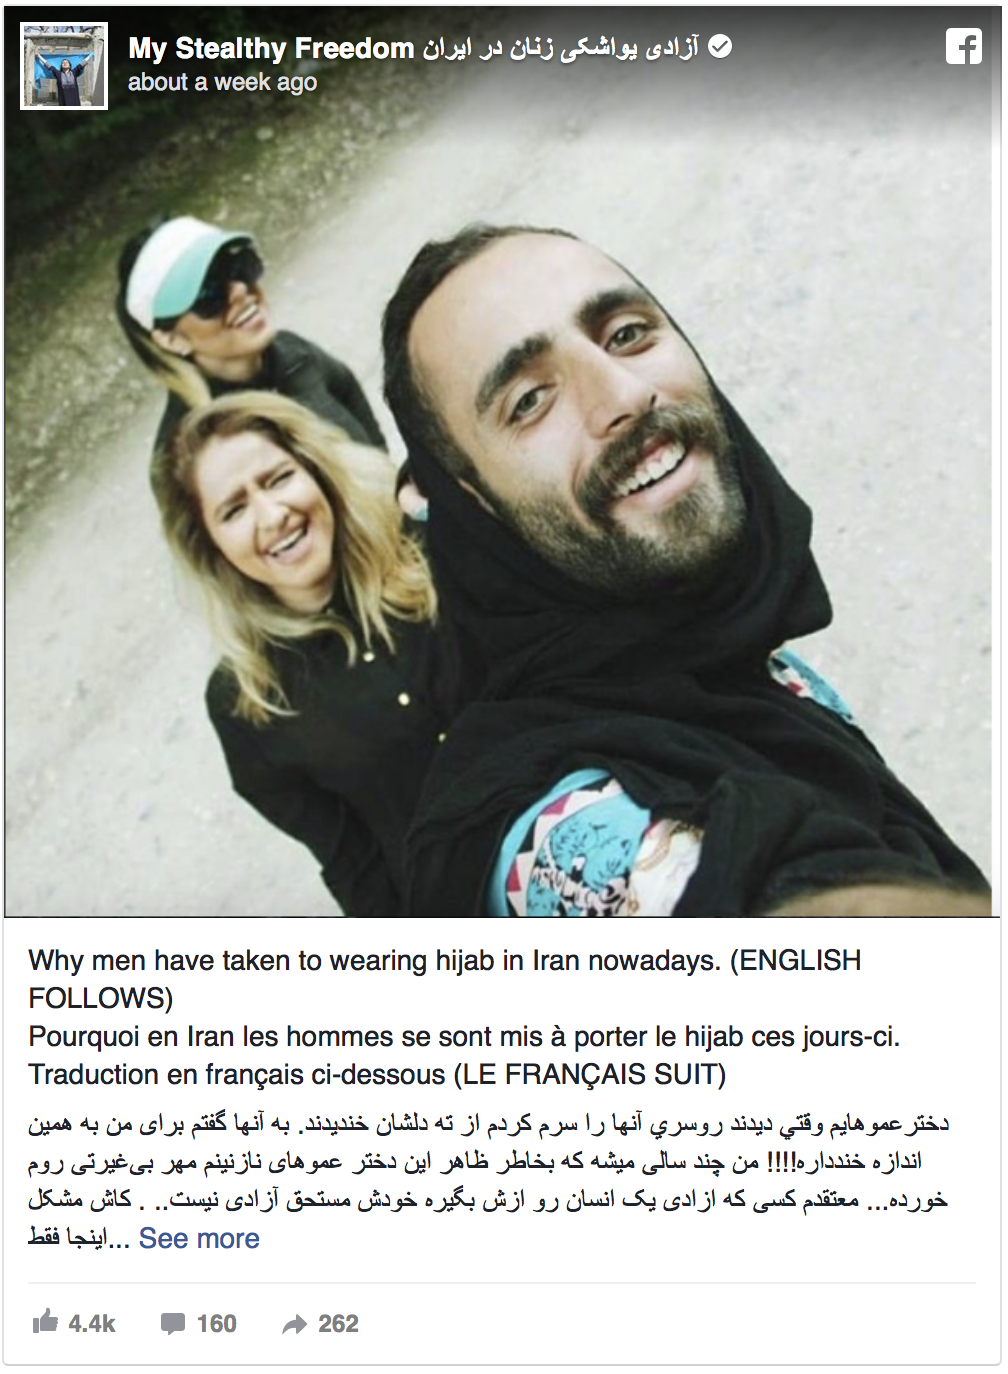 Men Wear Headscarf in Iran in Solidarity With Women, Men Wear Headscarf in Iran in Solidarity With Women